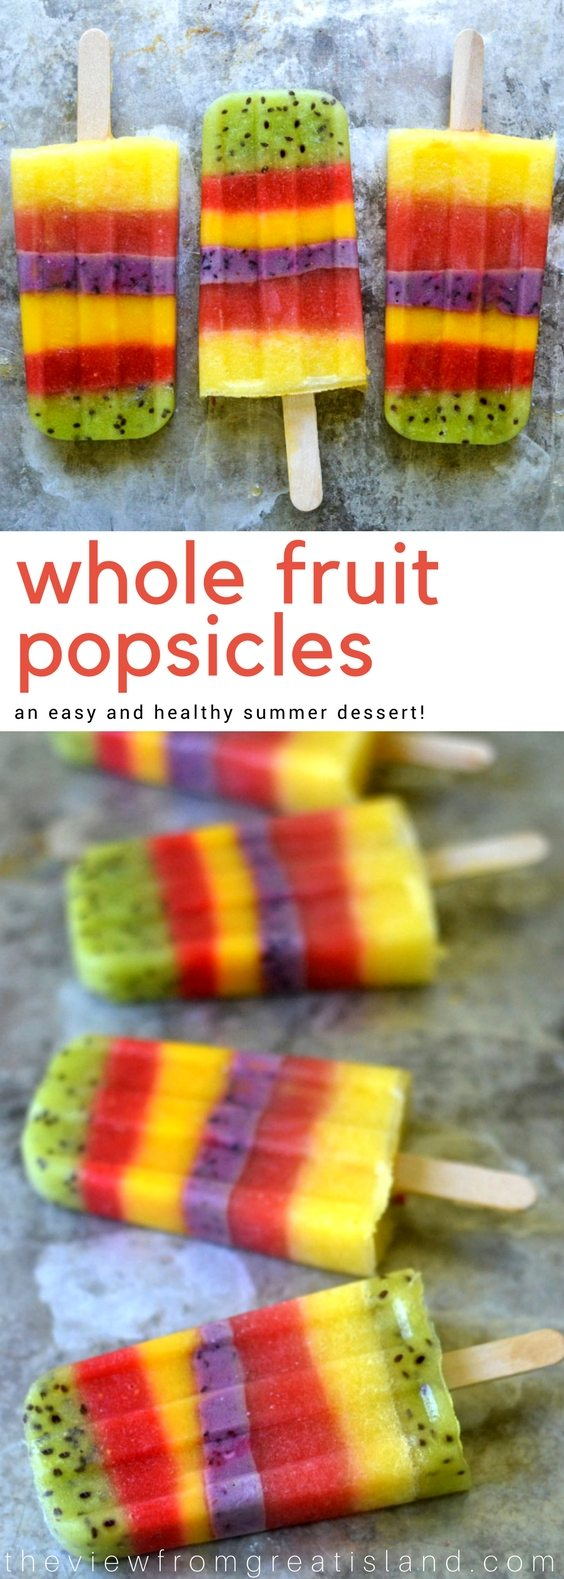 Whole Fruit Popsicles are a healthy, low calorie, low carb snack or dessert for kids of all ages! #popsicles #summer #diypopsicles #fruitpopsicles #healthydessert